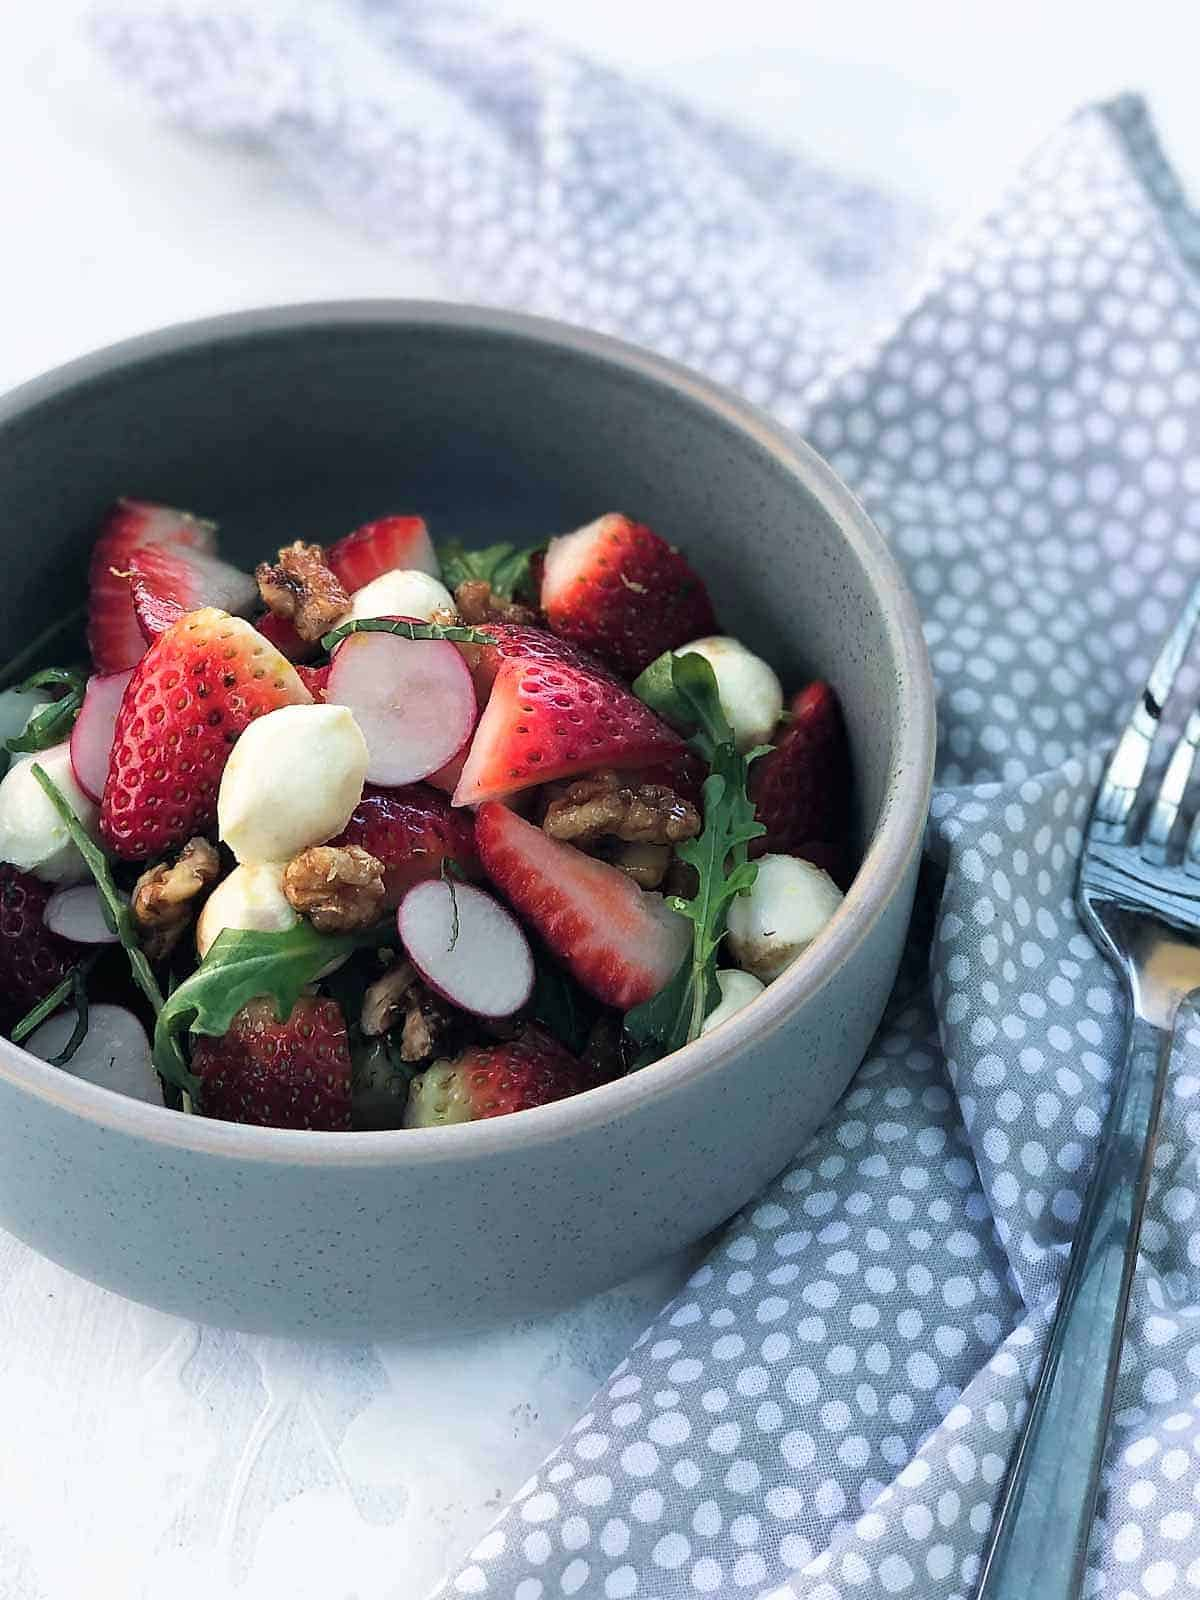 Summer Strawberry Salad with Bocconcini and Rocket